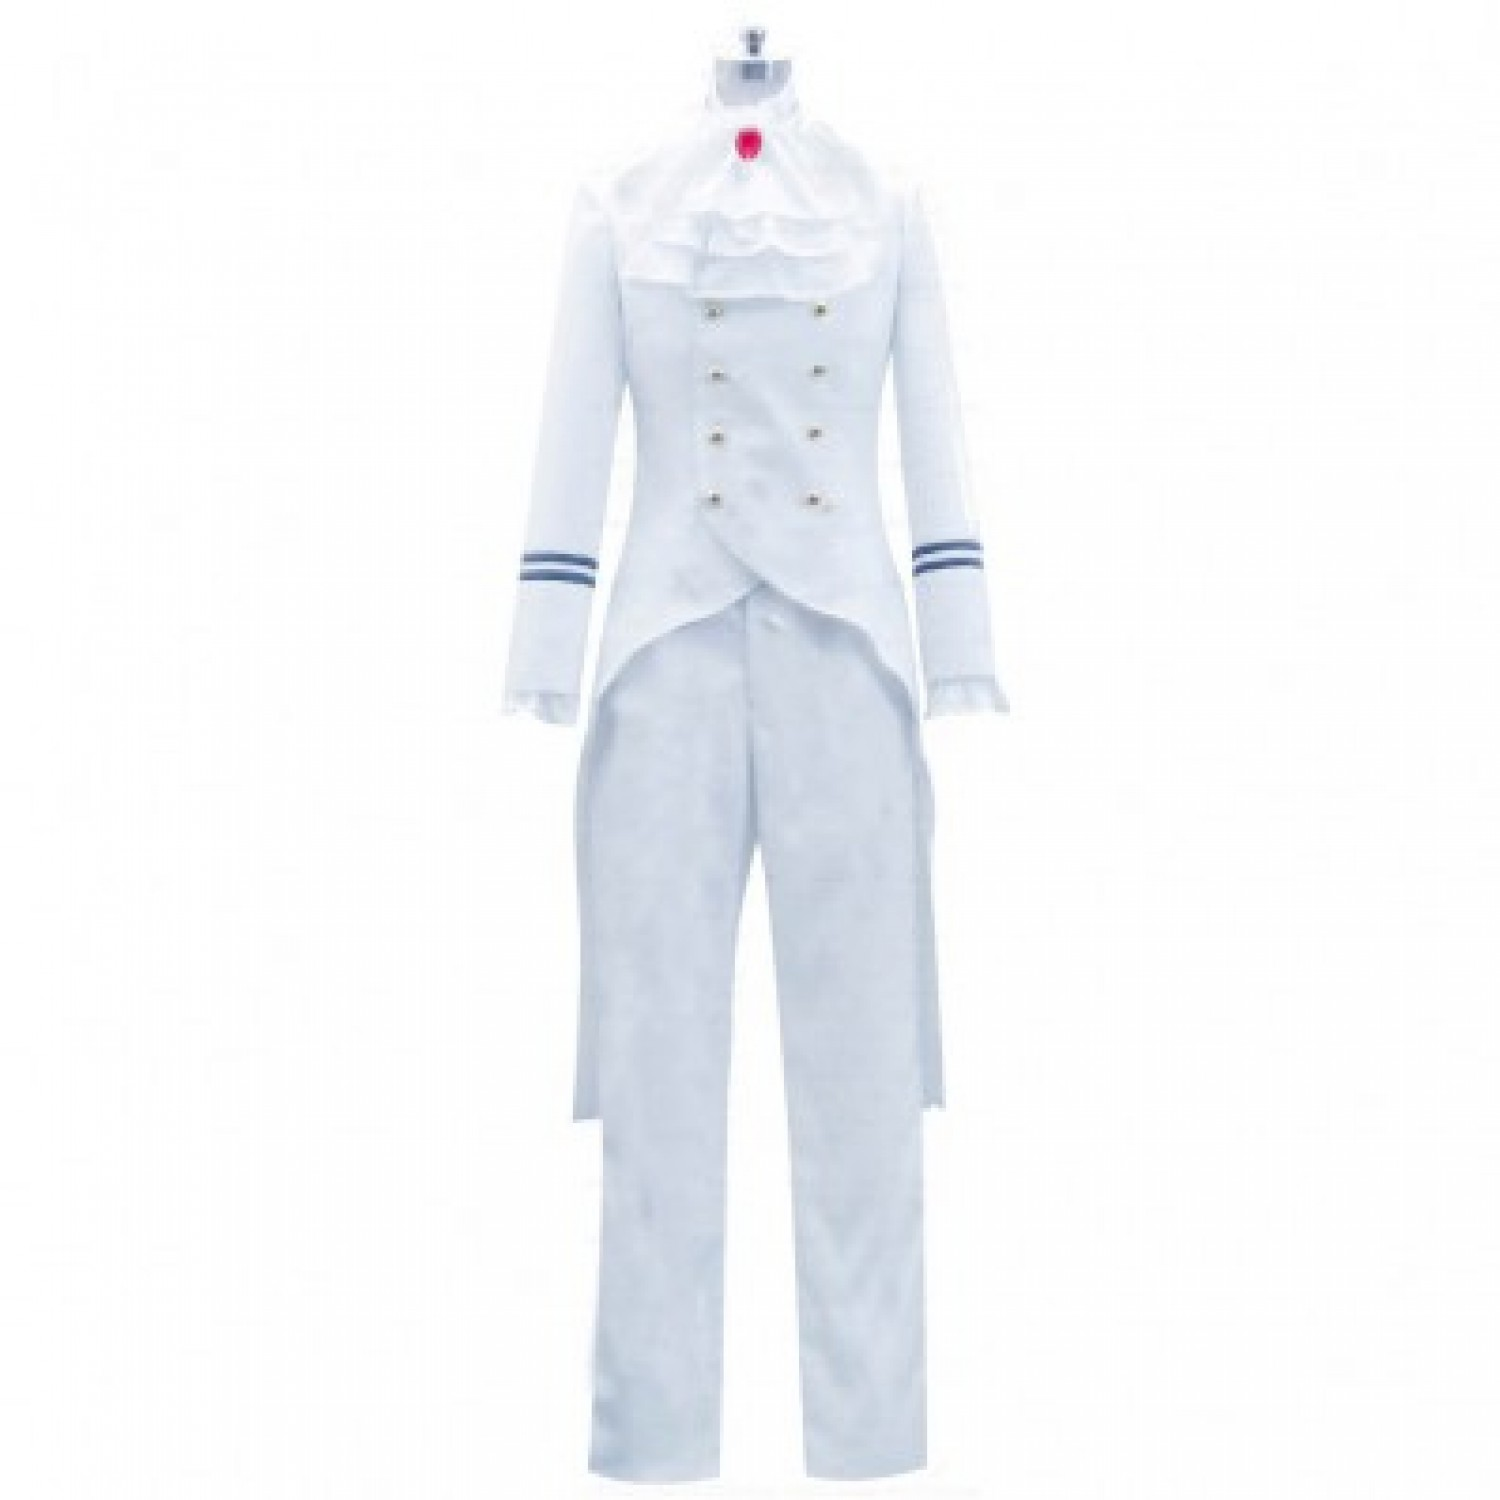 Black Bullet kuroshitsuji Anime Uniform Cosplay Costumes